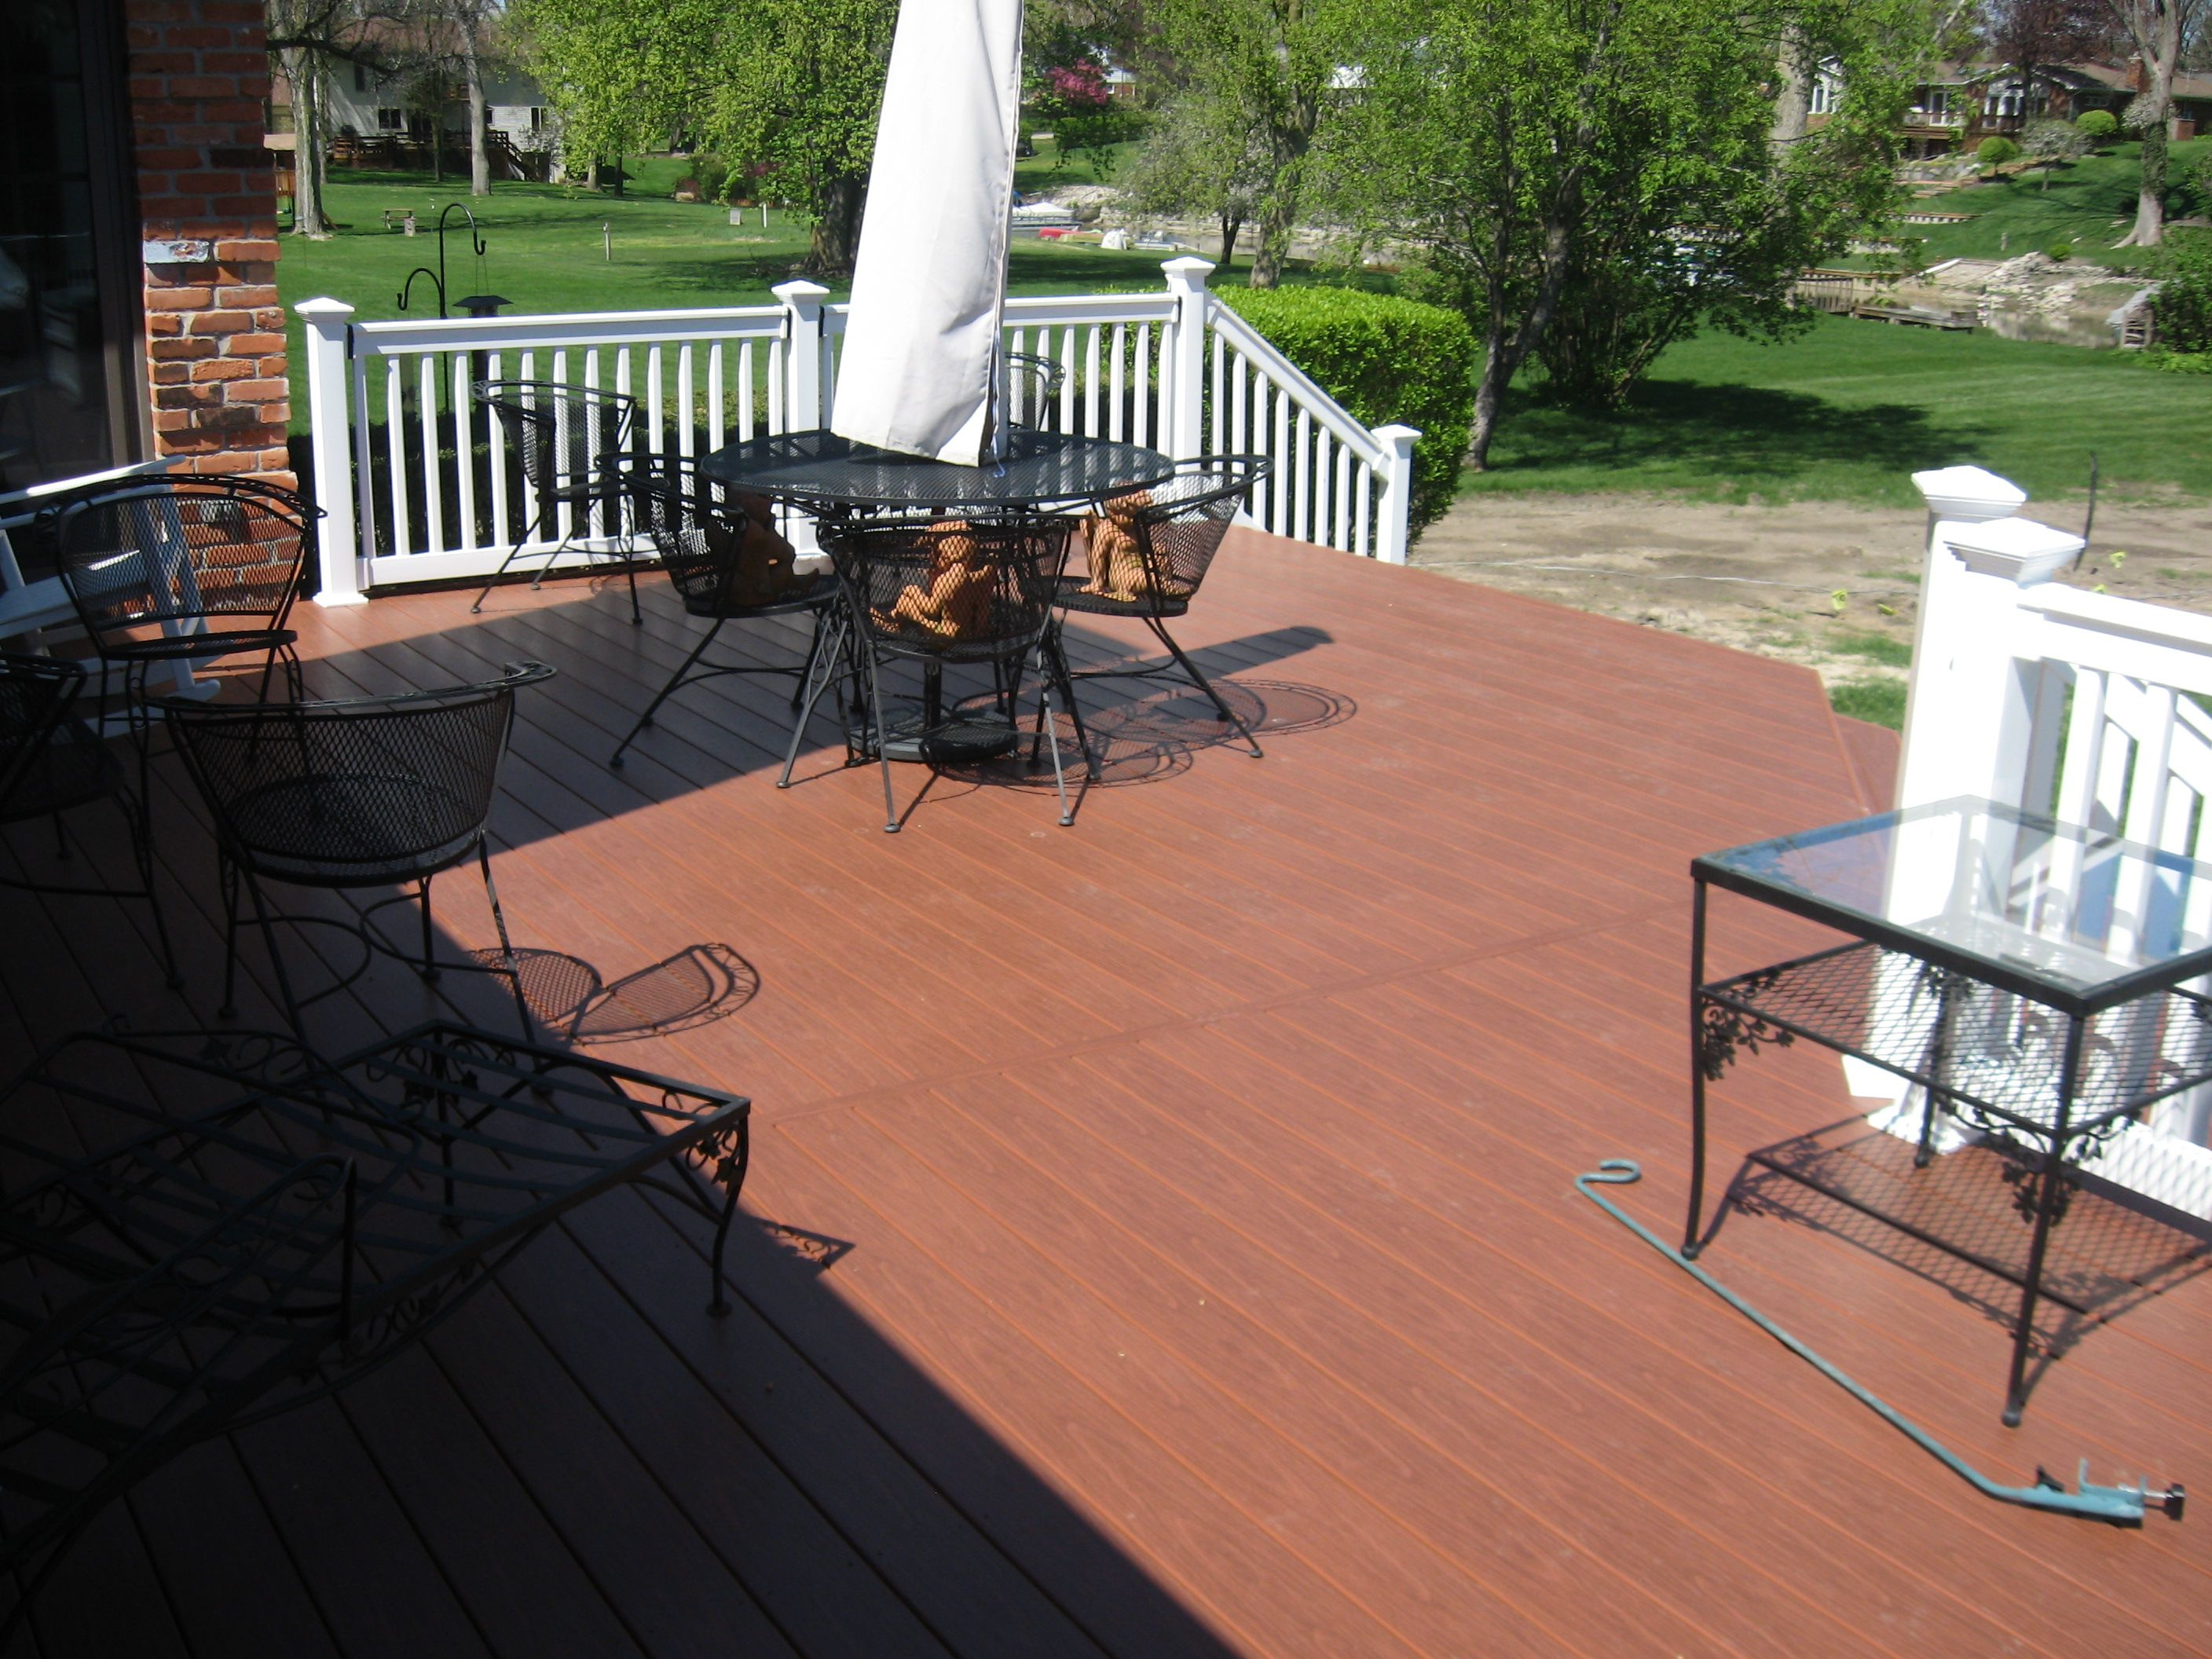 A Gossen Pvc Deck By Creative Wood Products In Michigan